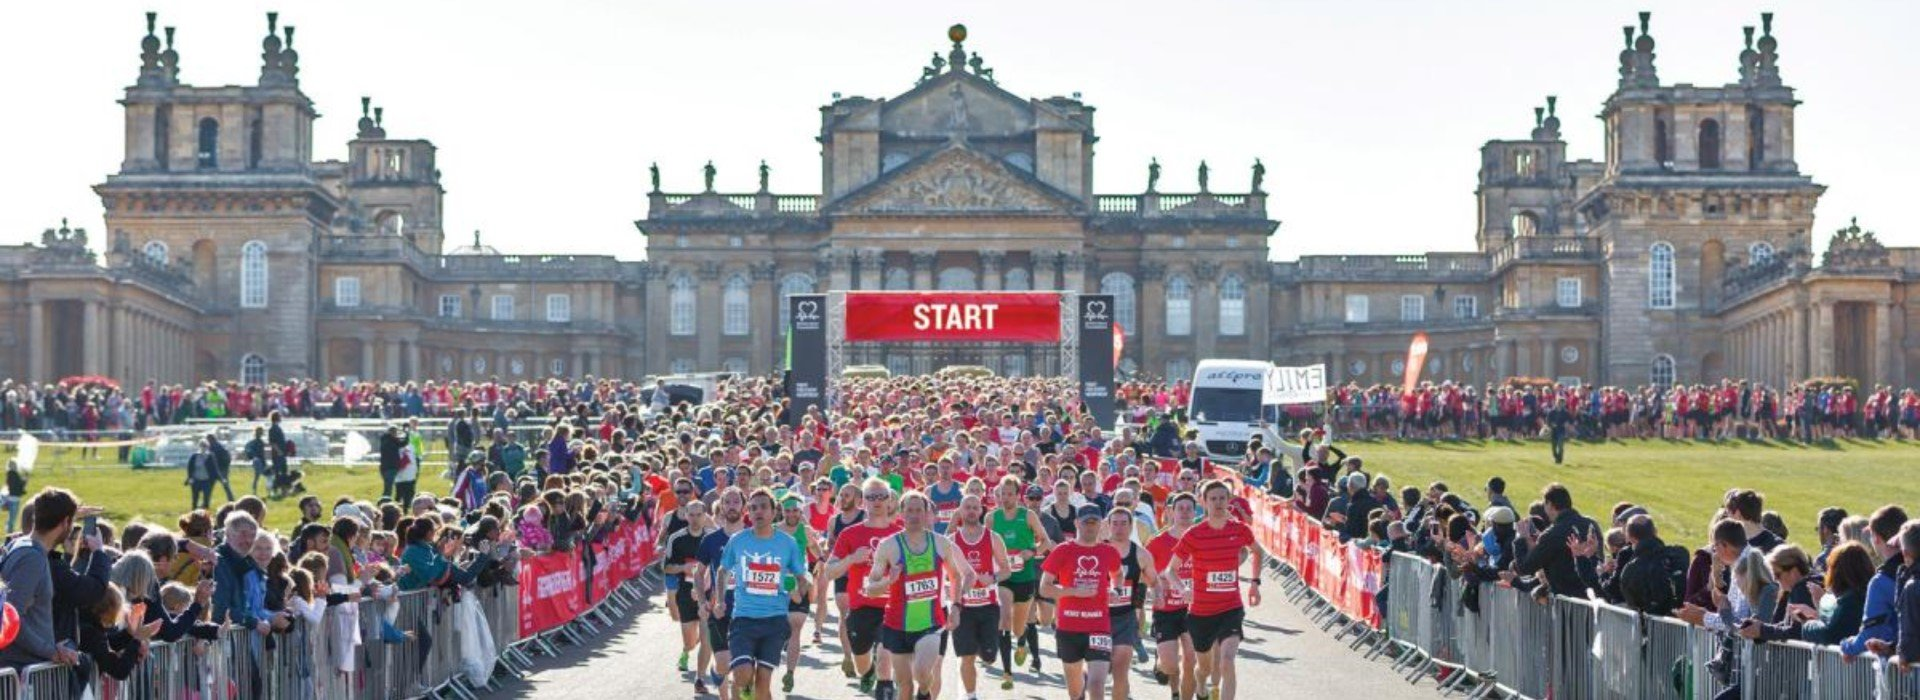 The British Heart Foundation Half Marathon 2018 Blenheim Palace Oxford